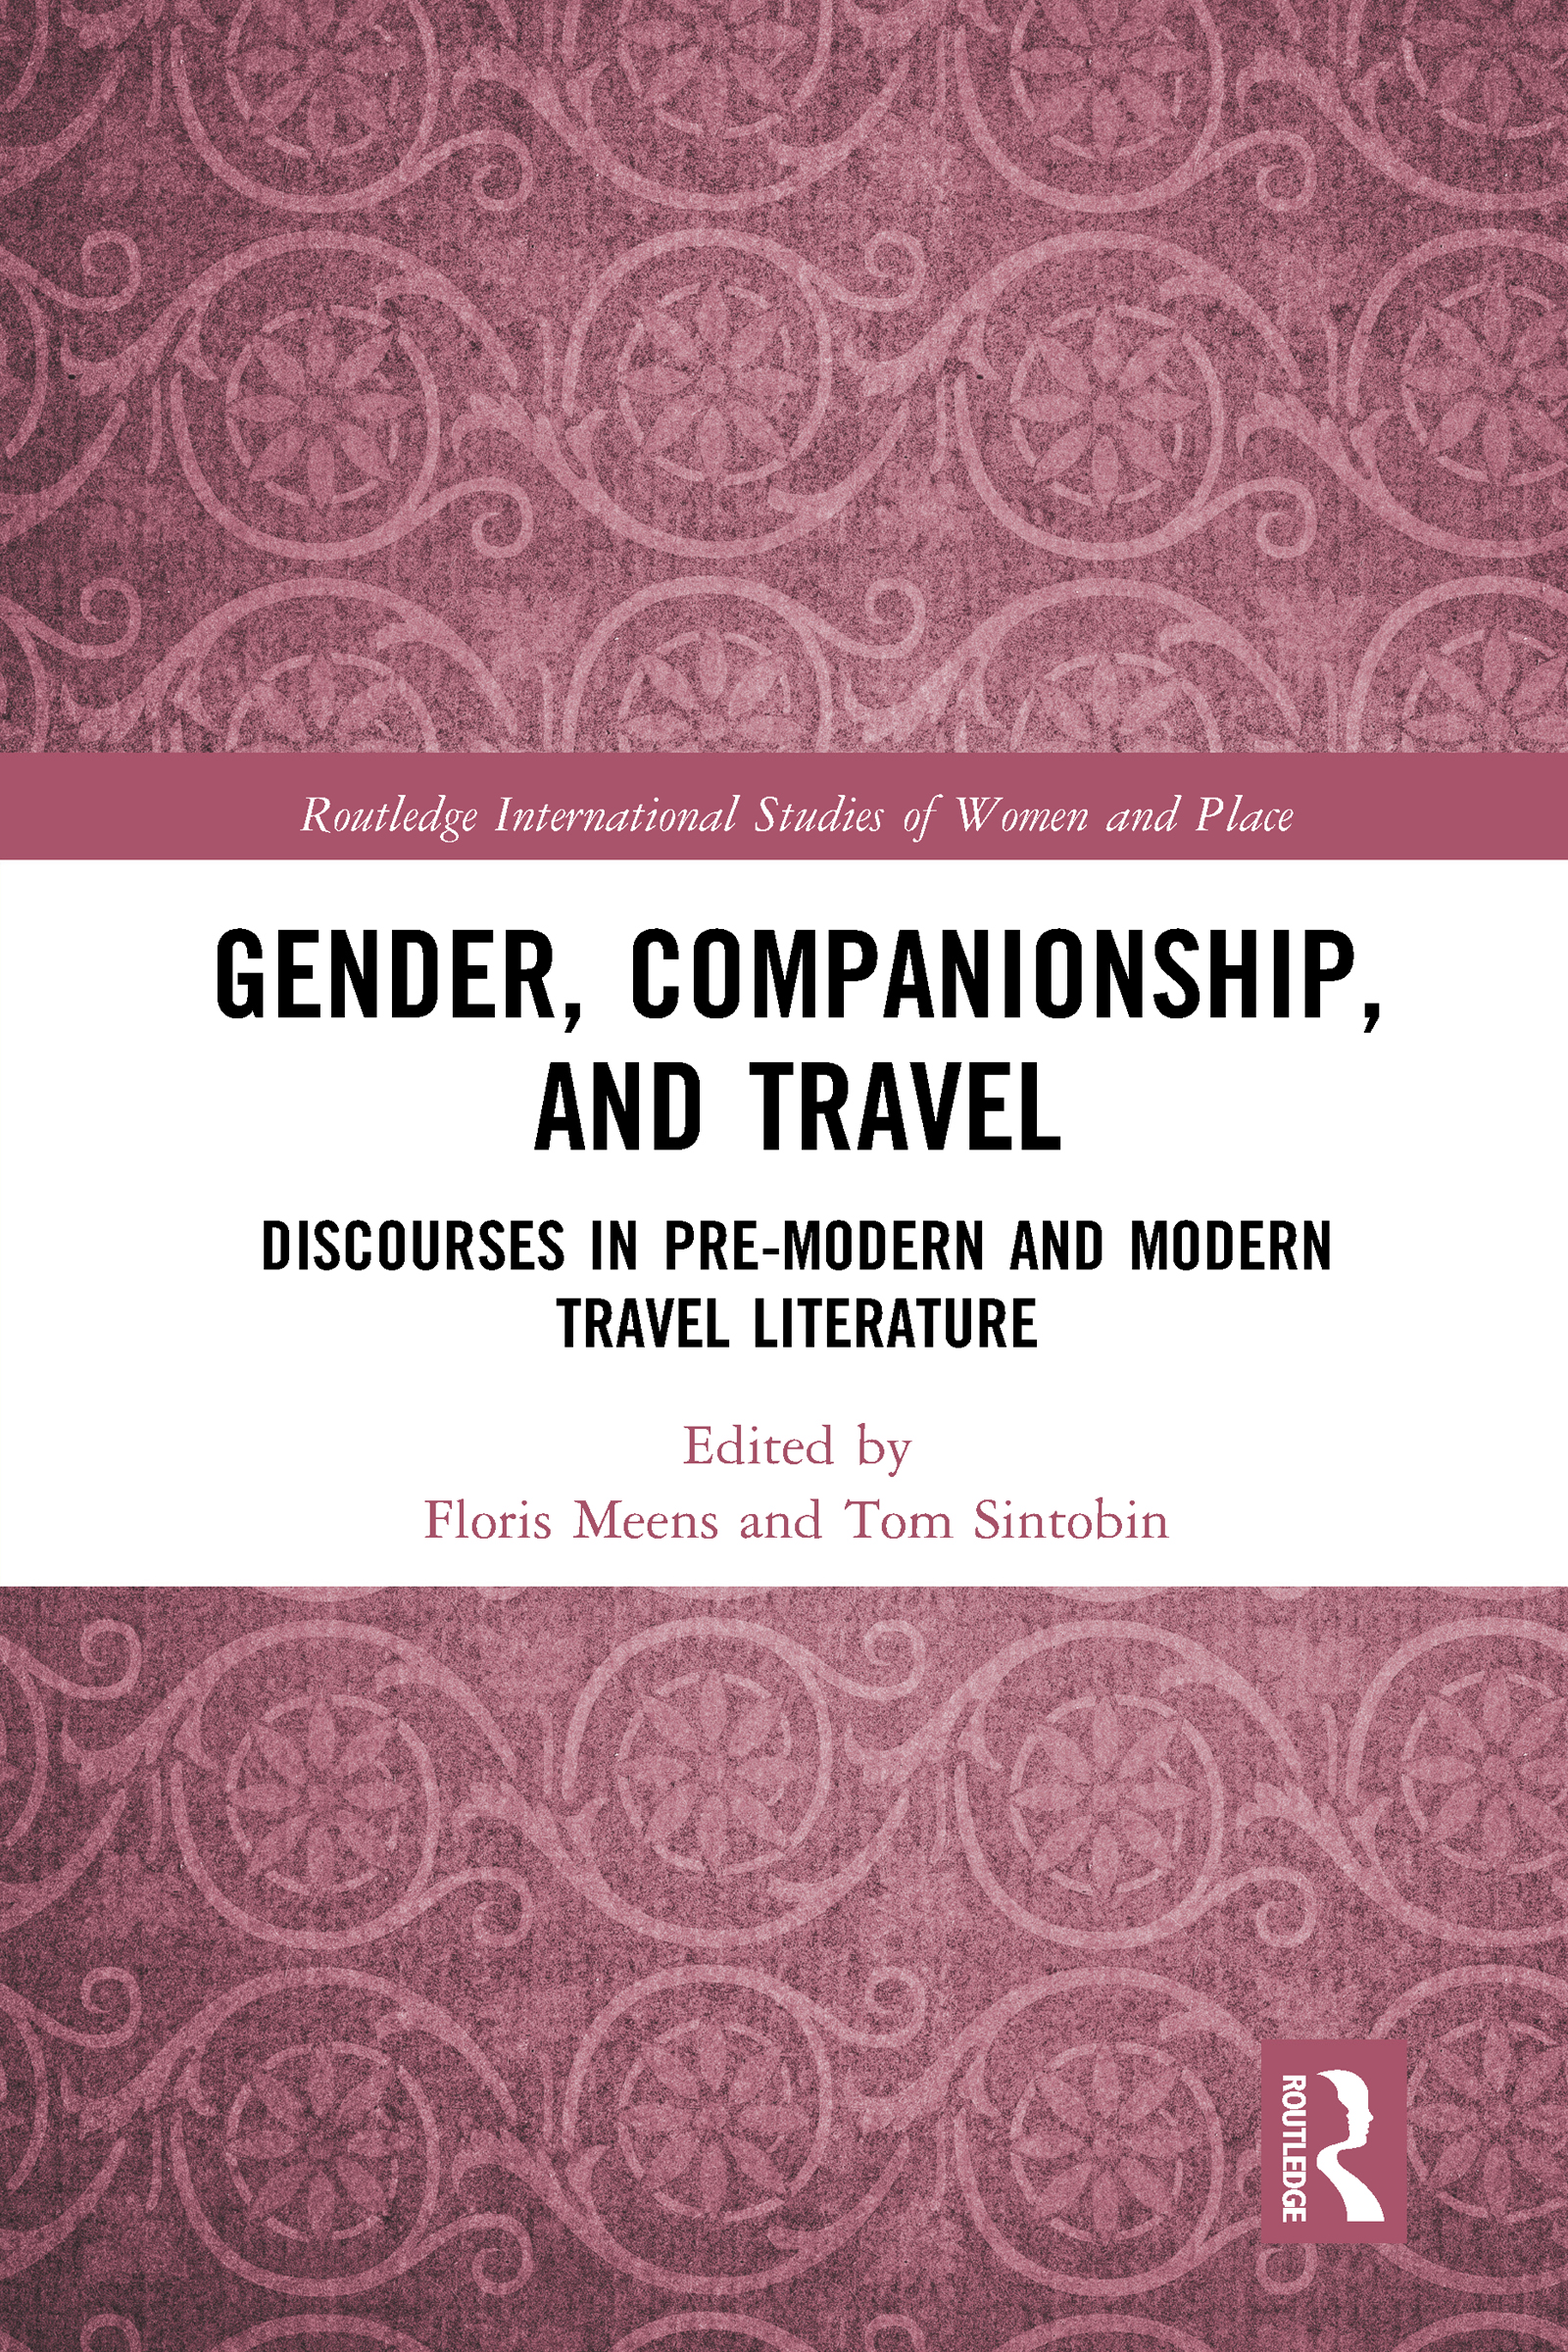 Gender, Companionship, and Travel